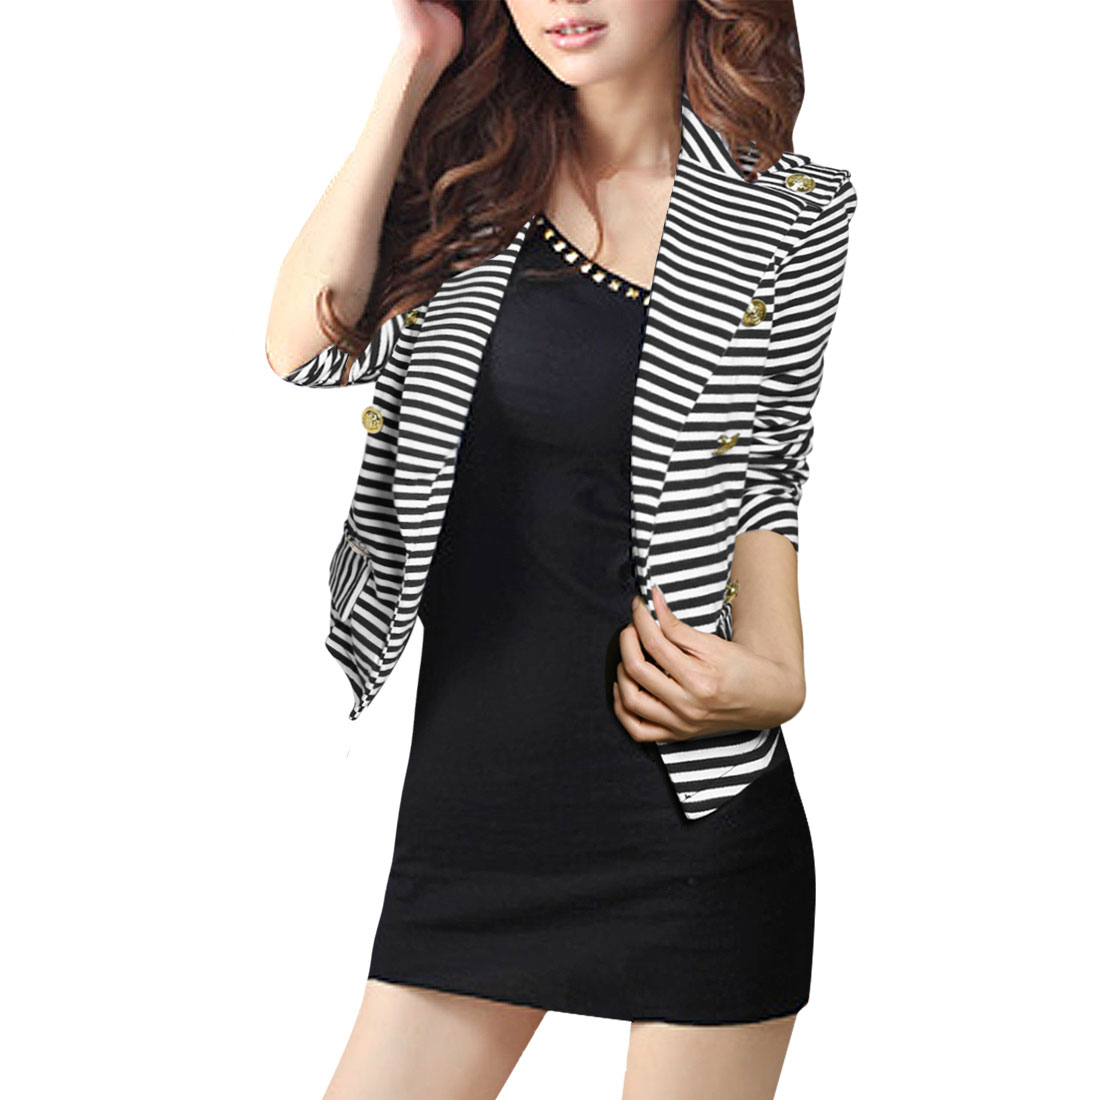 Allegra K Woman Striped Peaked Collar Double Breasted Blazer Coat Black White XS